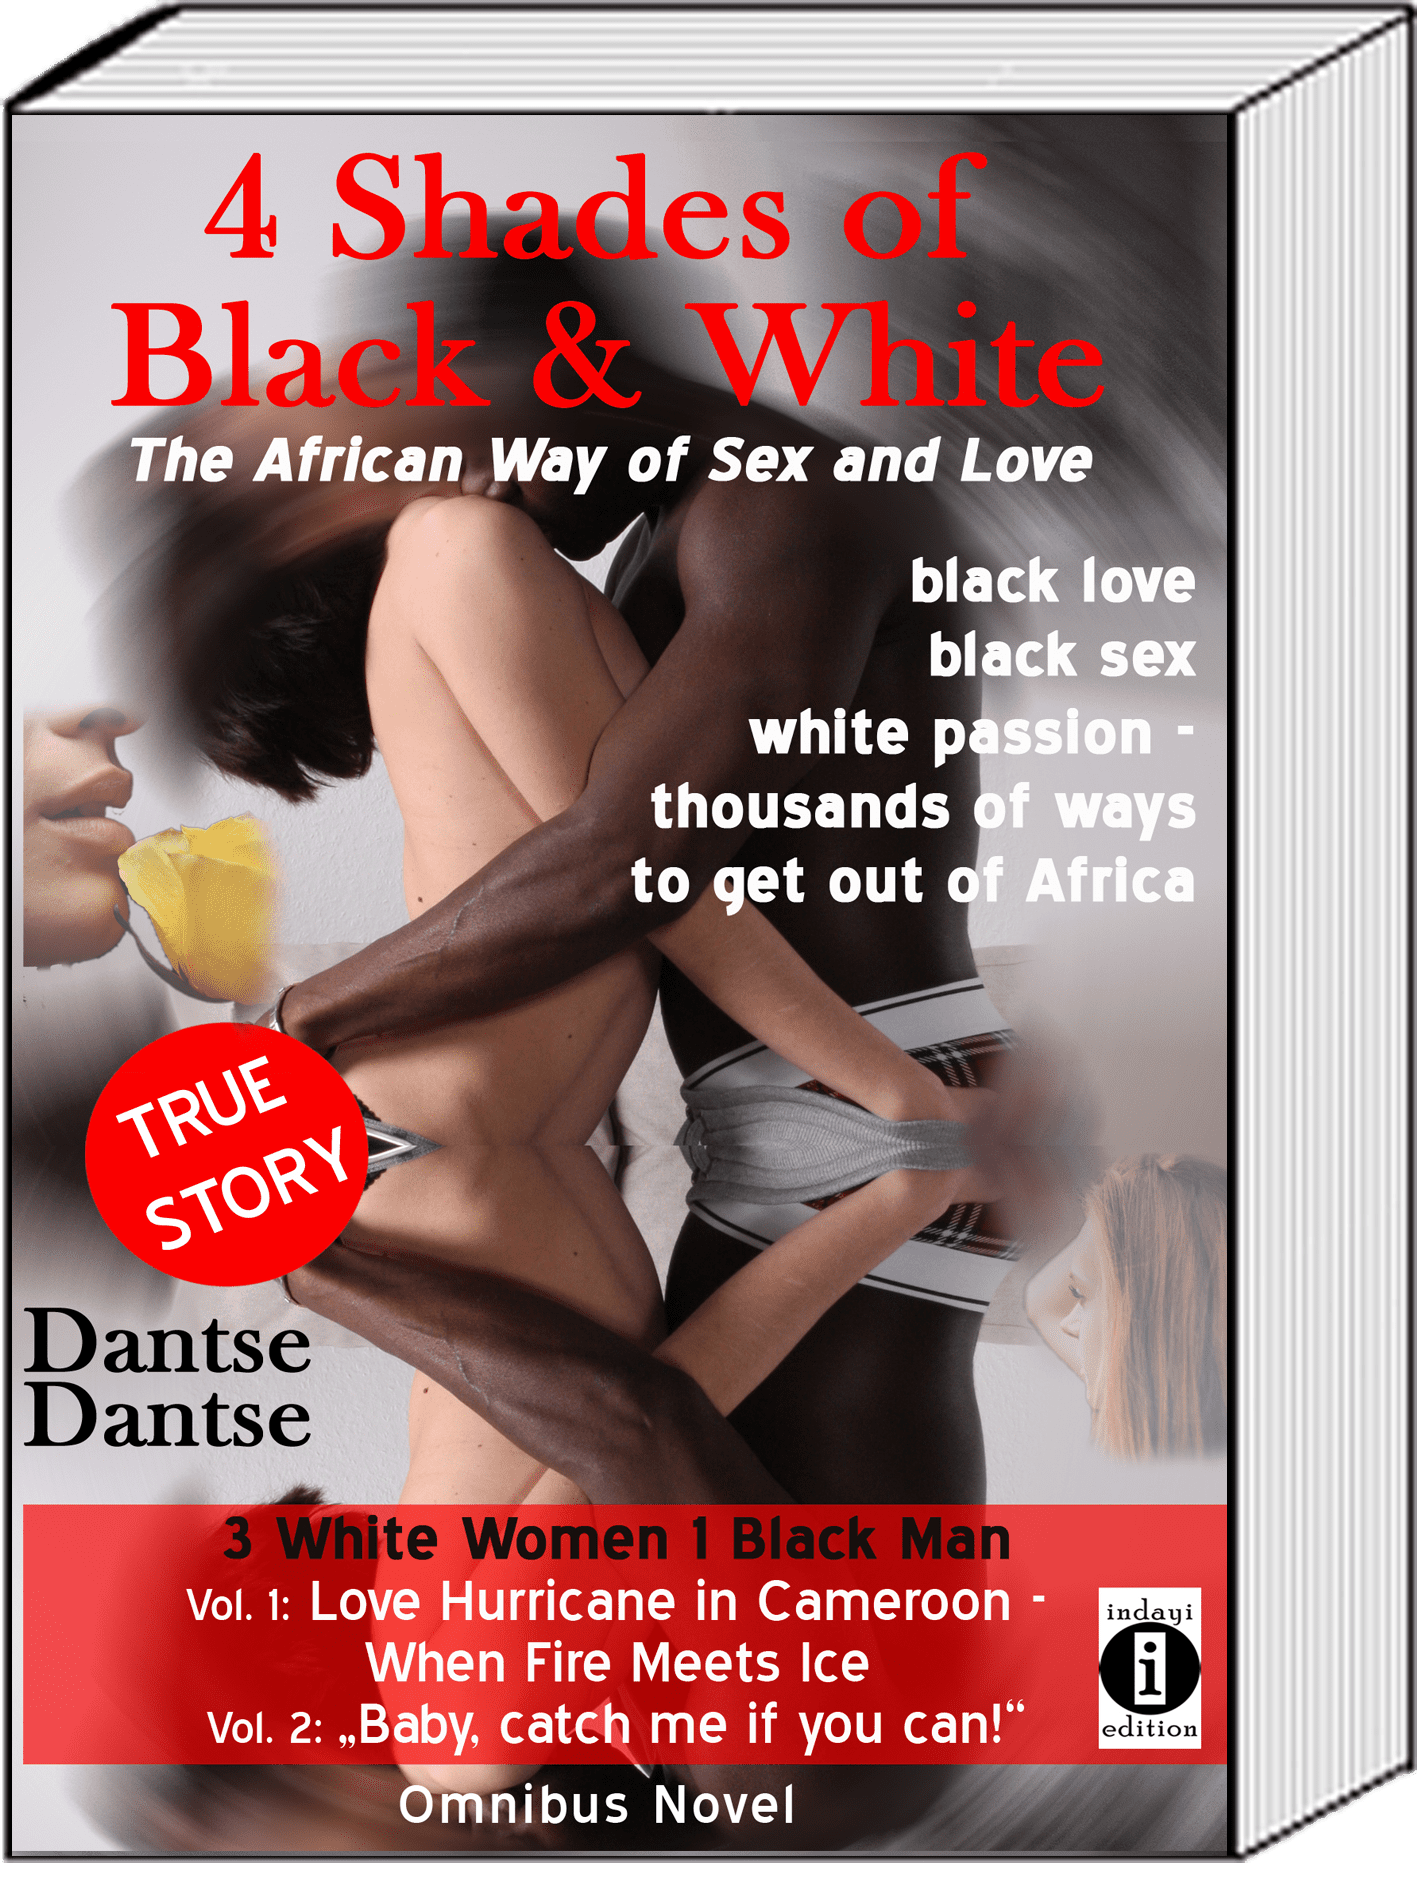 4 Shades of Black & White - The African Way of Sex and Love: black love, black sex, white passion - thousands of ways out of Africa